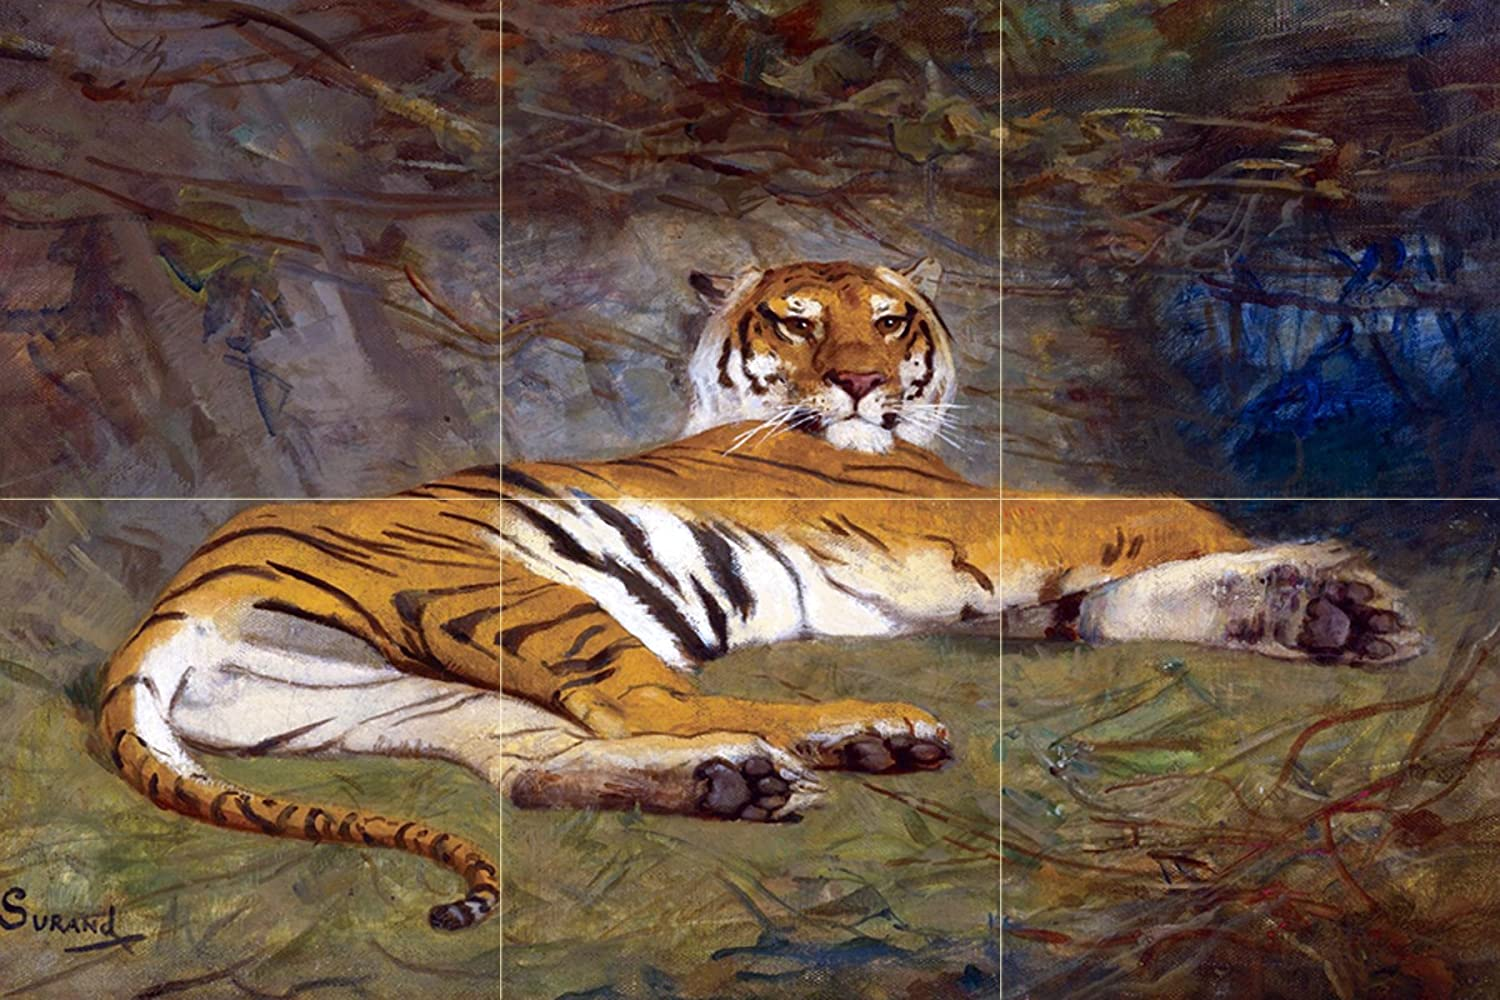 The tiger wild animals g surand tile mural wall for Artwork on tile ceramic mural